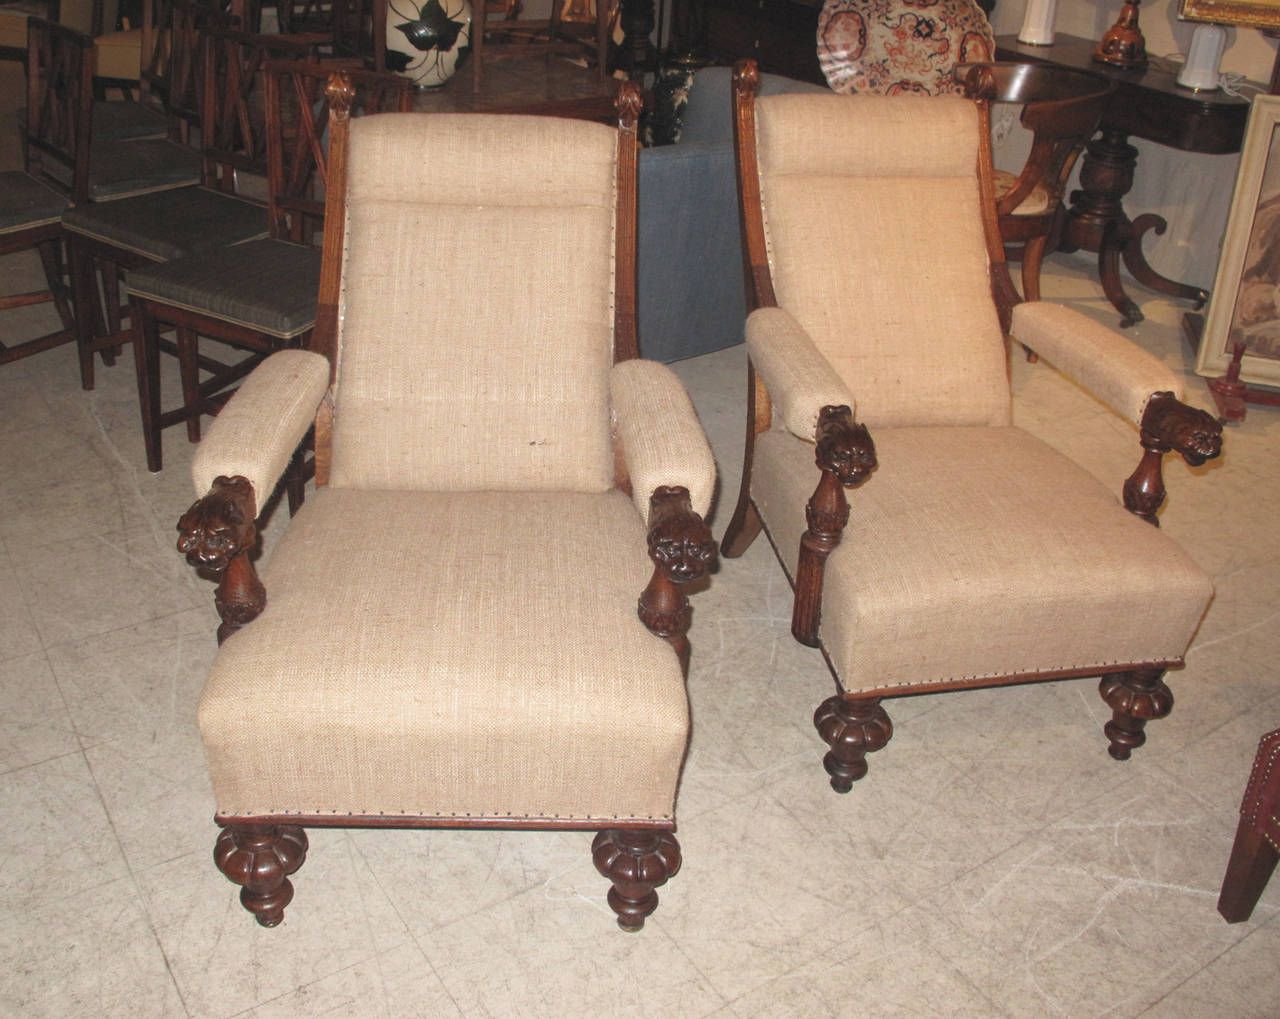 Pair of slope-back late 19th century oak library armchairs with arms terminating in lion head carvings. The chairs upholstered in a burlap fabric.